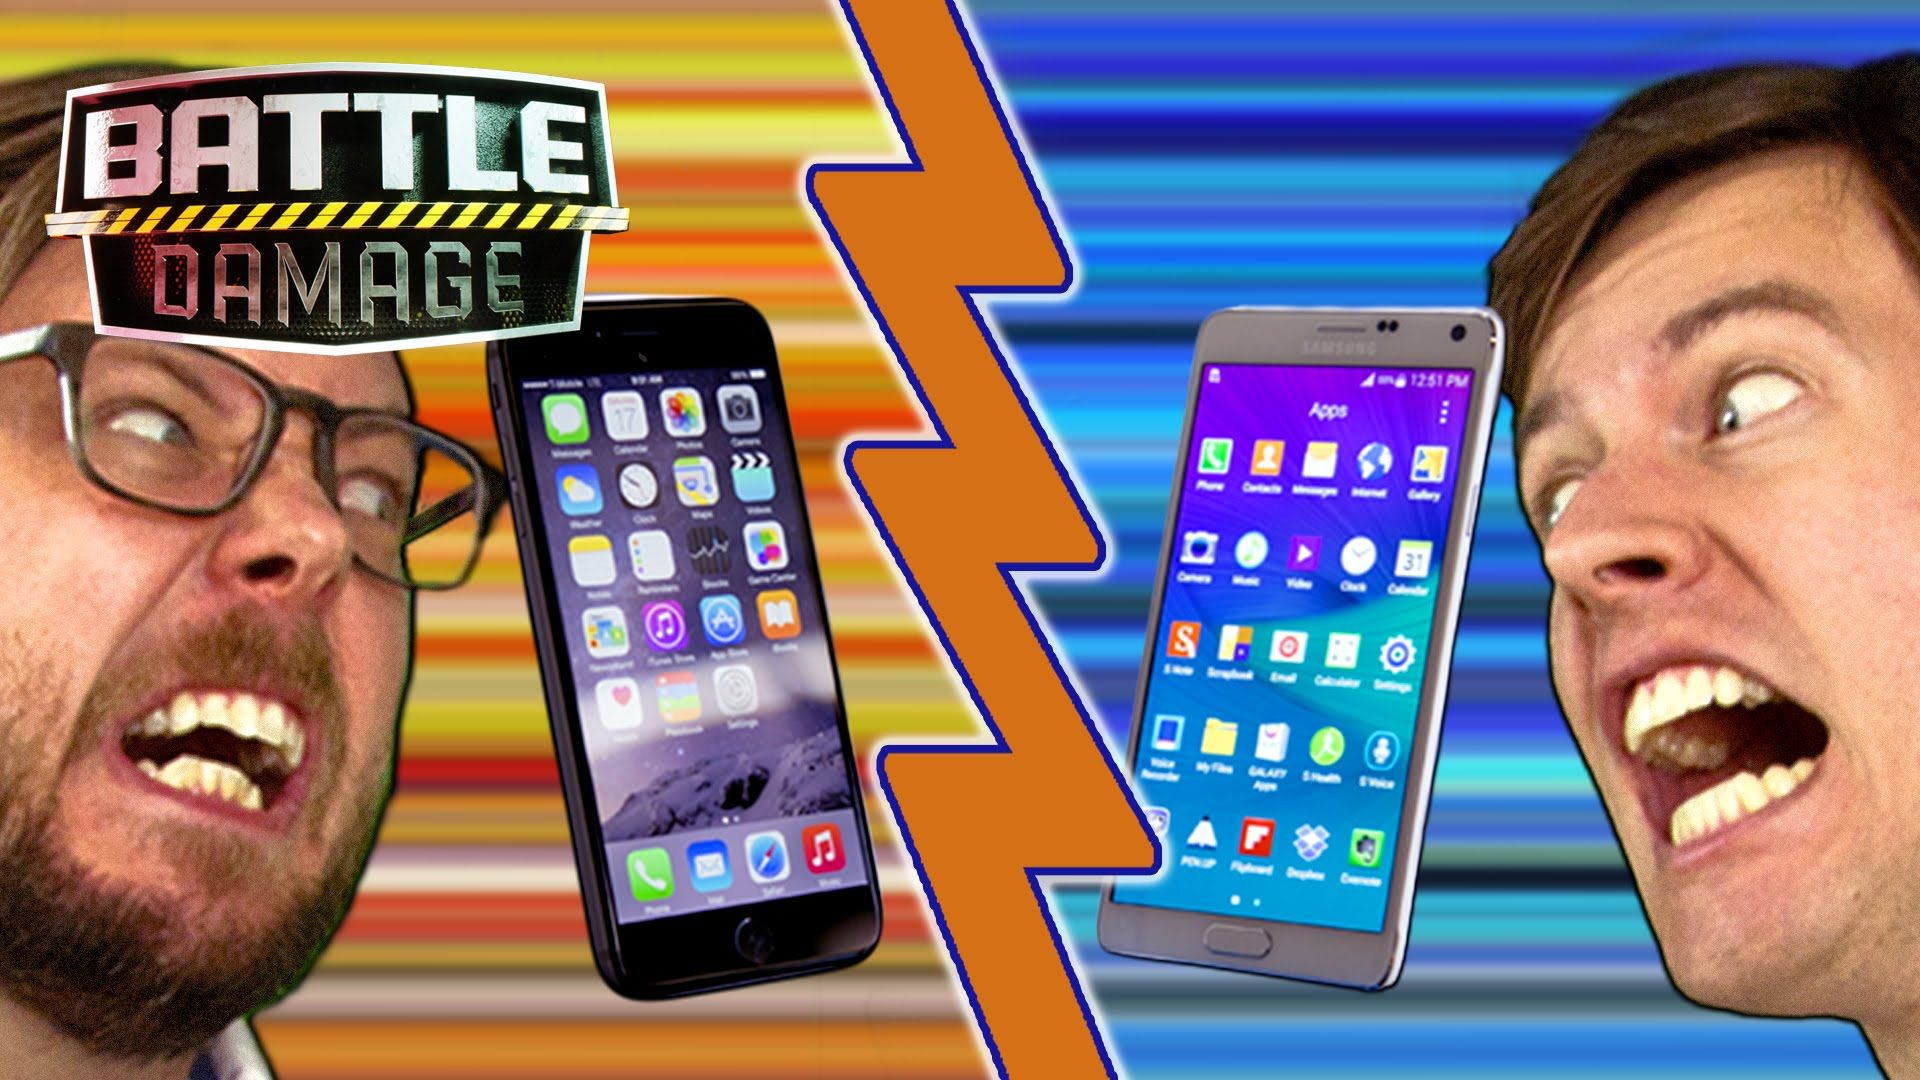 iPhone 6 Plus vs. Galaxy Note 4 | WIRED's Battle Damage